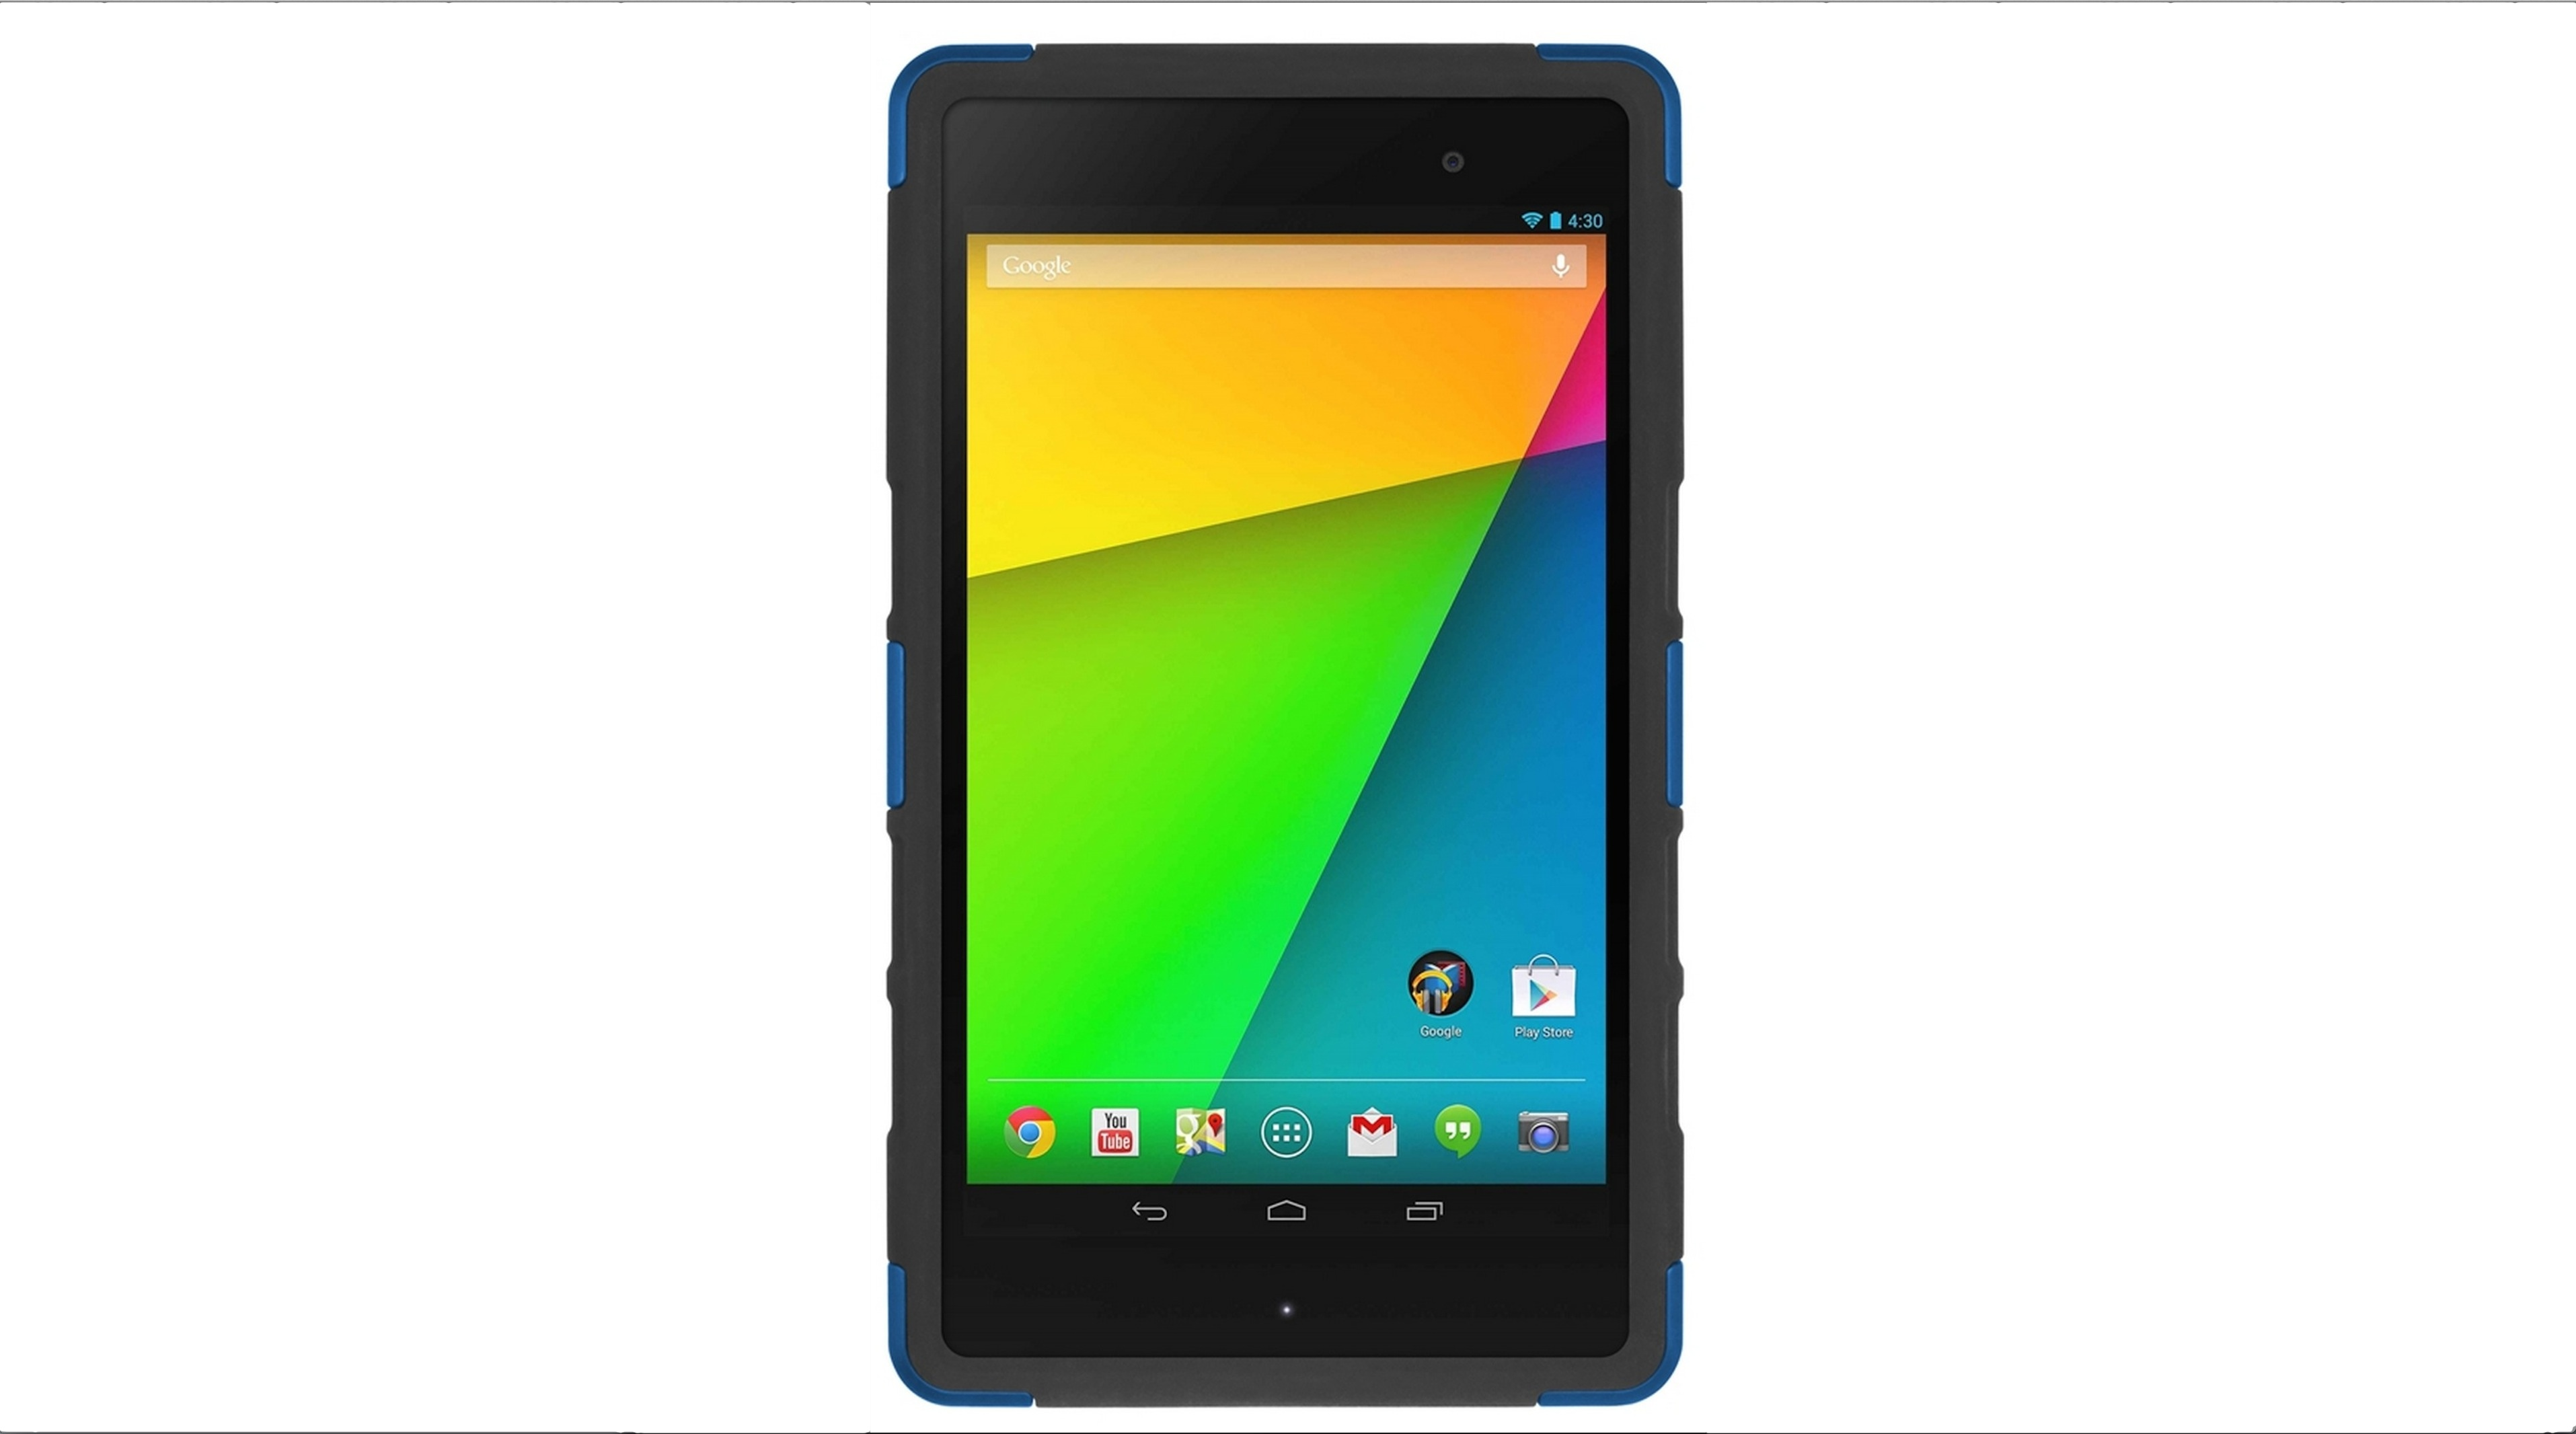 Seidio-dilex-case-nexus-7-2013